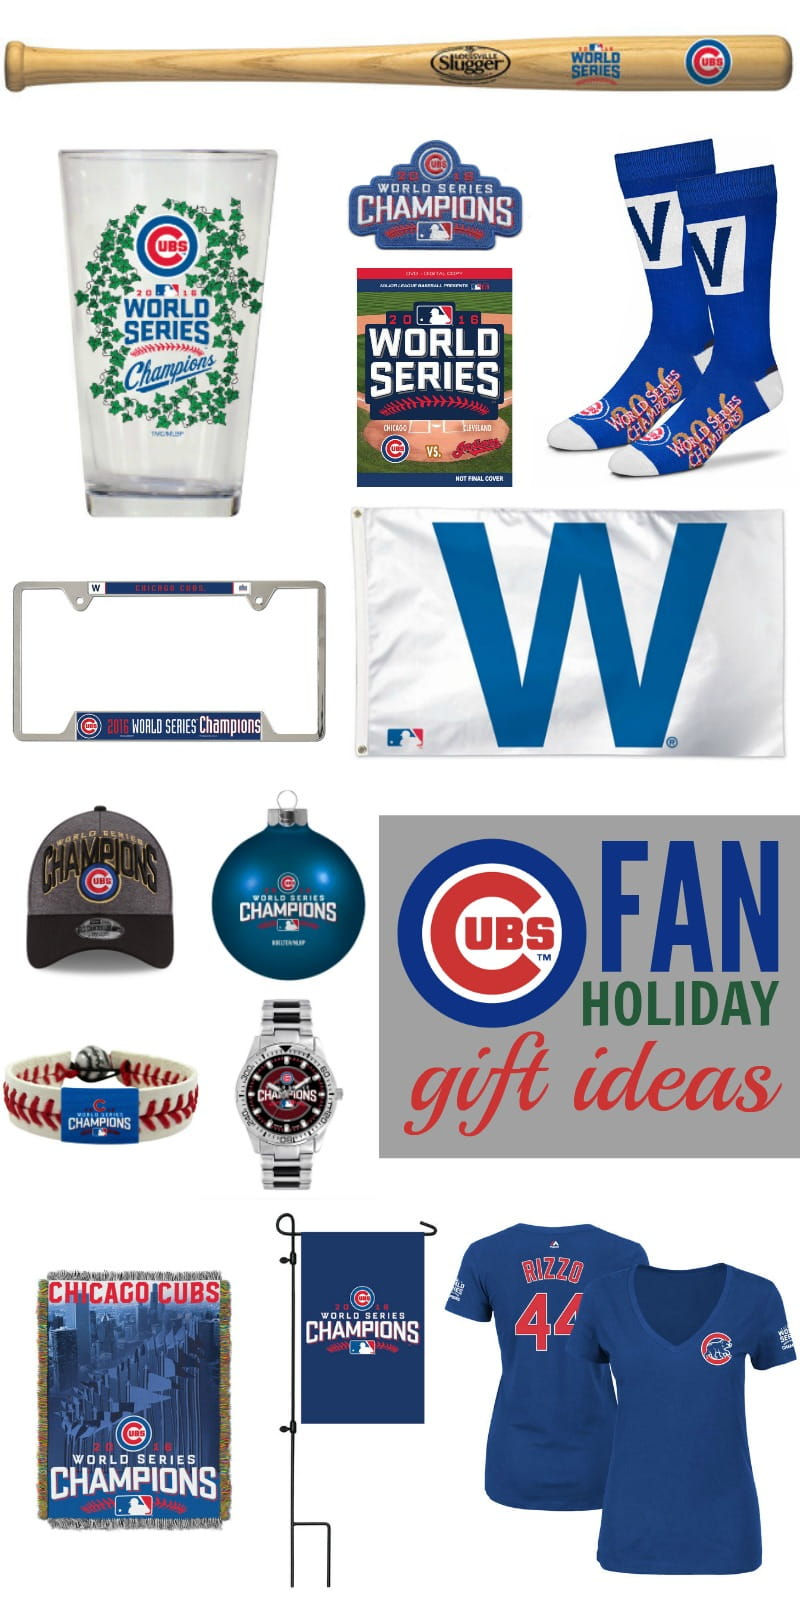 Cubs Fan Holiday Gift Ideas - The Chicago Cubs won the World Series! Help your favorite Cubs fan celebrate their beloved Cubbies with these gift ideas.